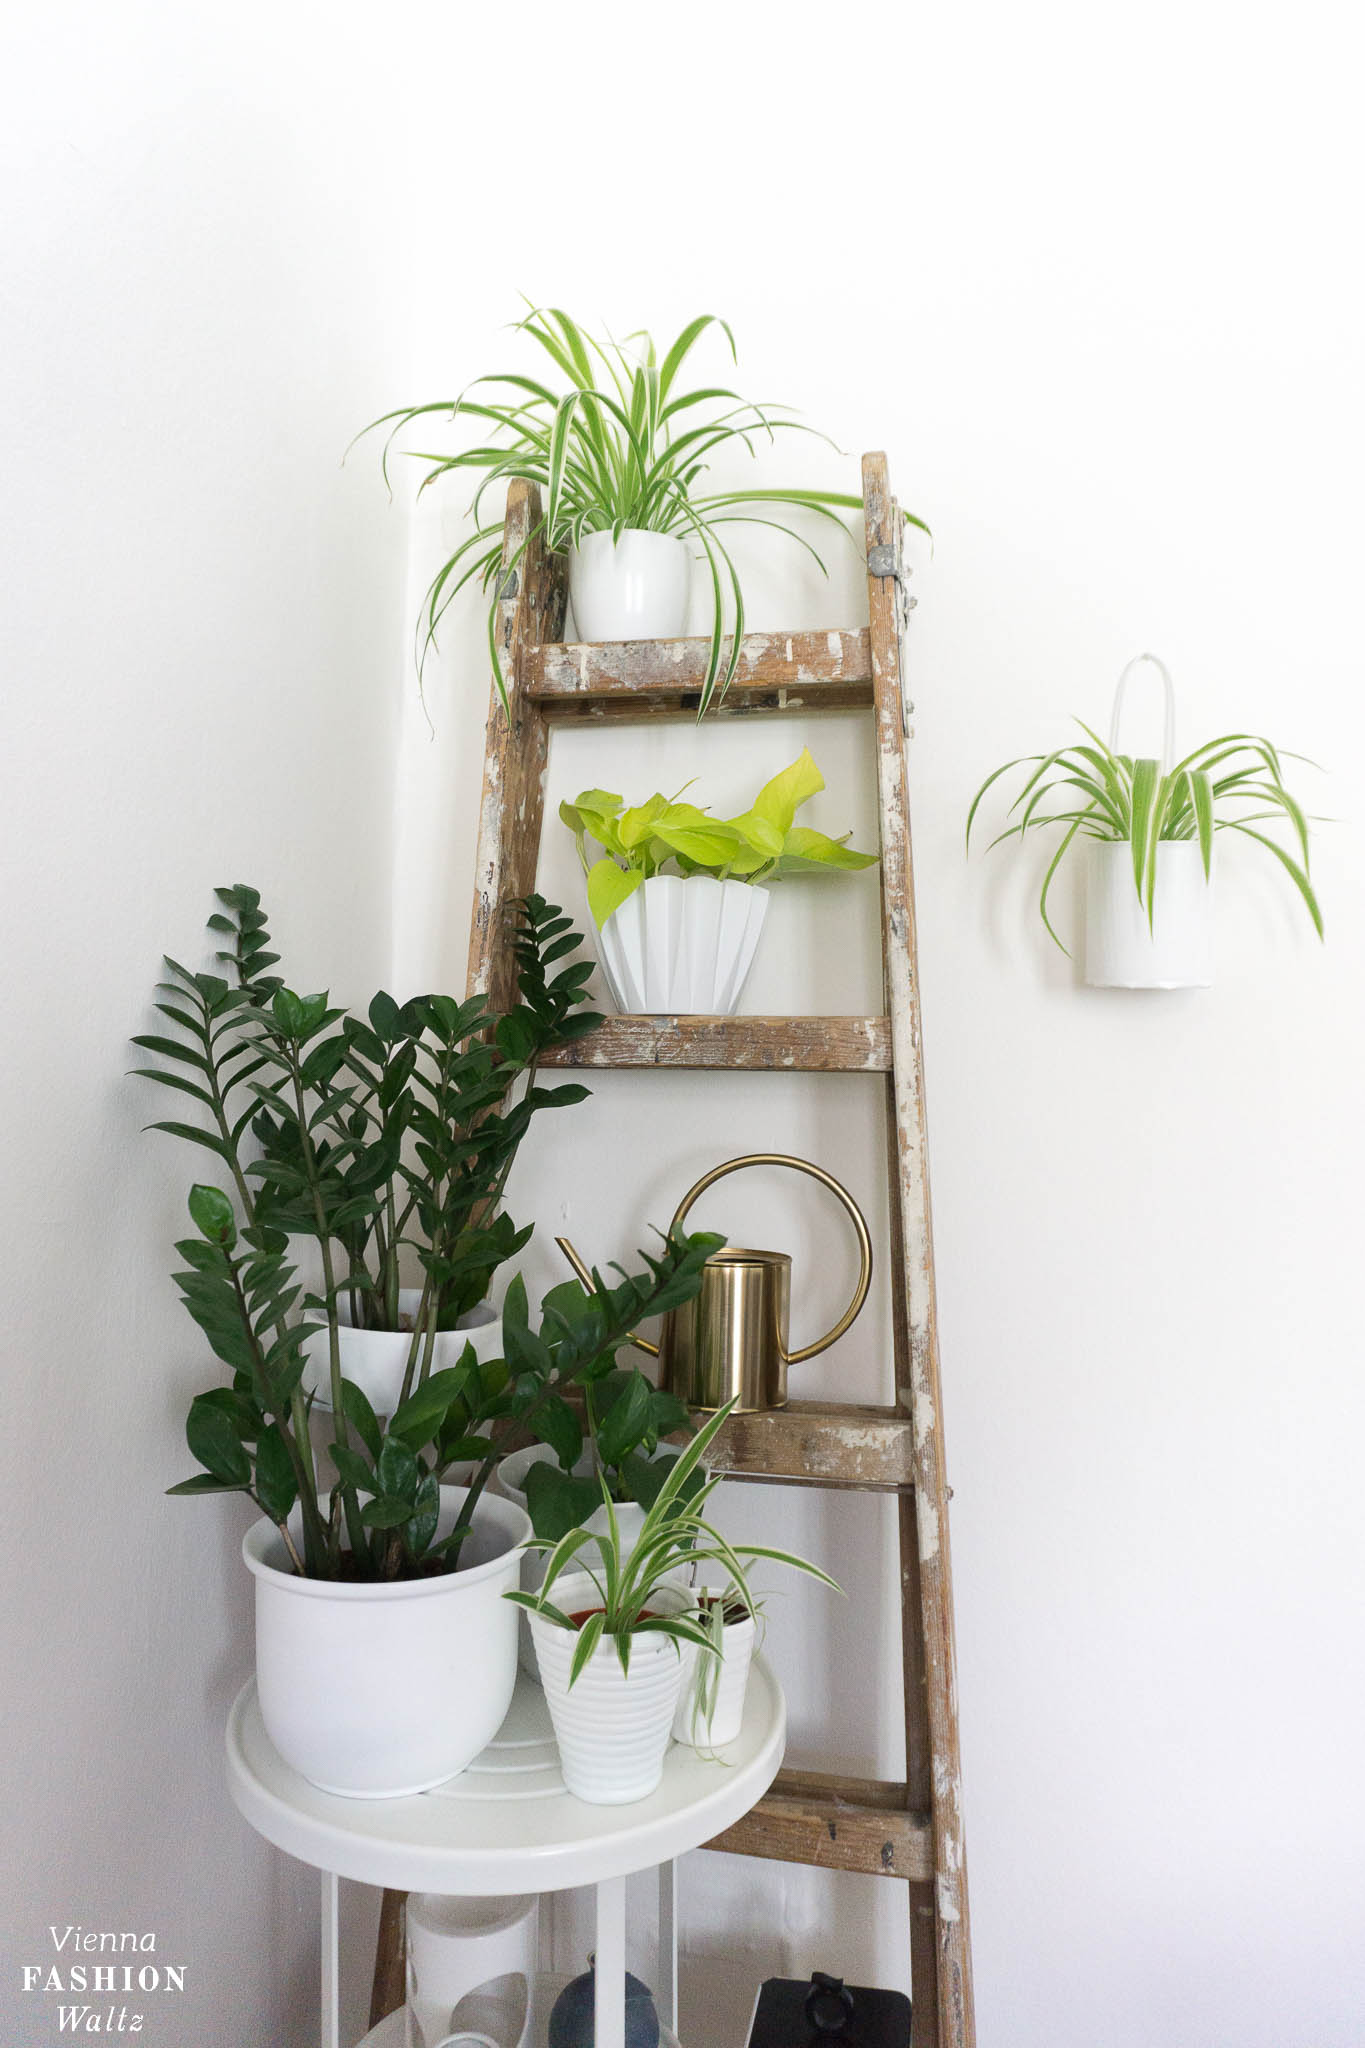 Urban Jungle Ideen | Indoor Garden Plant Ideas | Grünlilien, Pflanzenwand, hanging plants | Blog Vienna Fashion Waltz